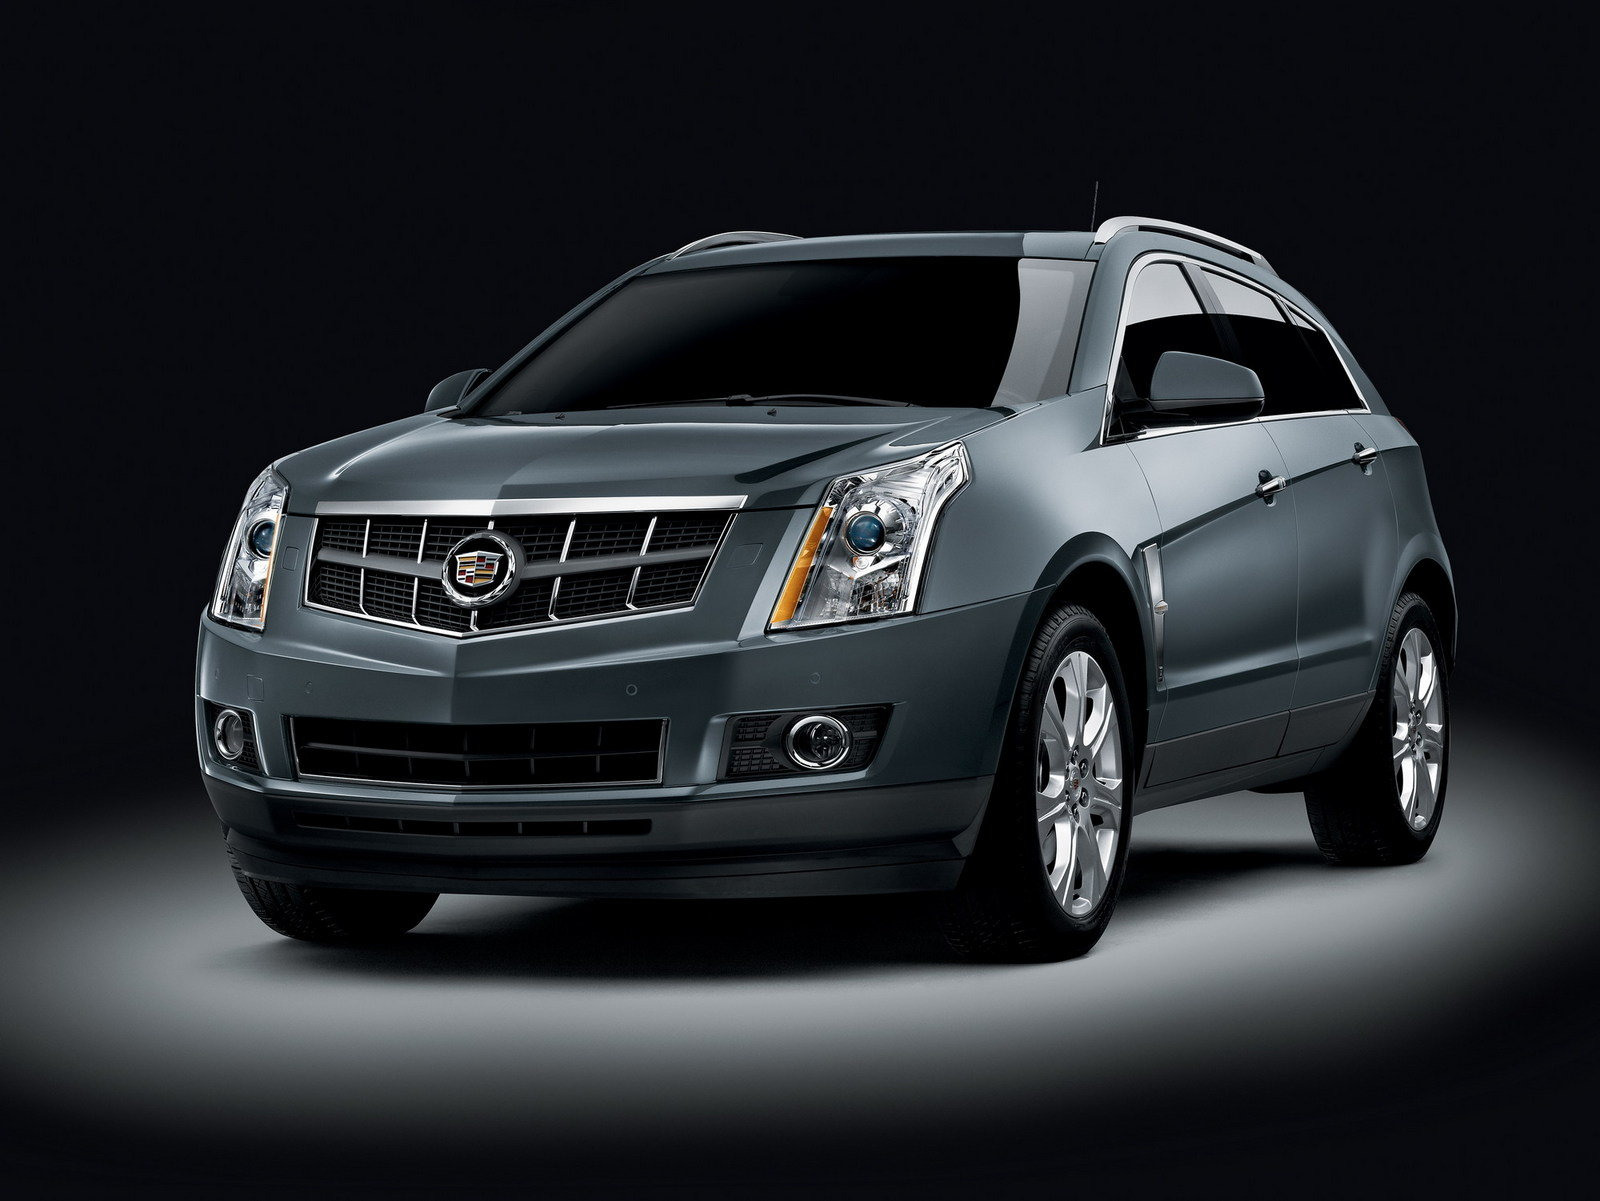 2010 2012 cadillac srx picture 344265 car review top speed. Black Bedroom Furniture Sets. Home Design Ideas